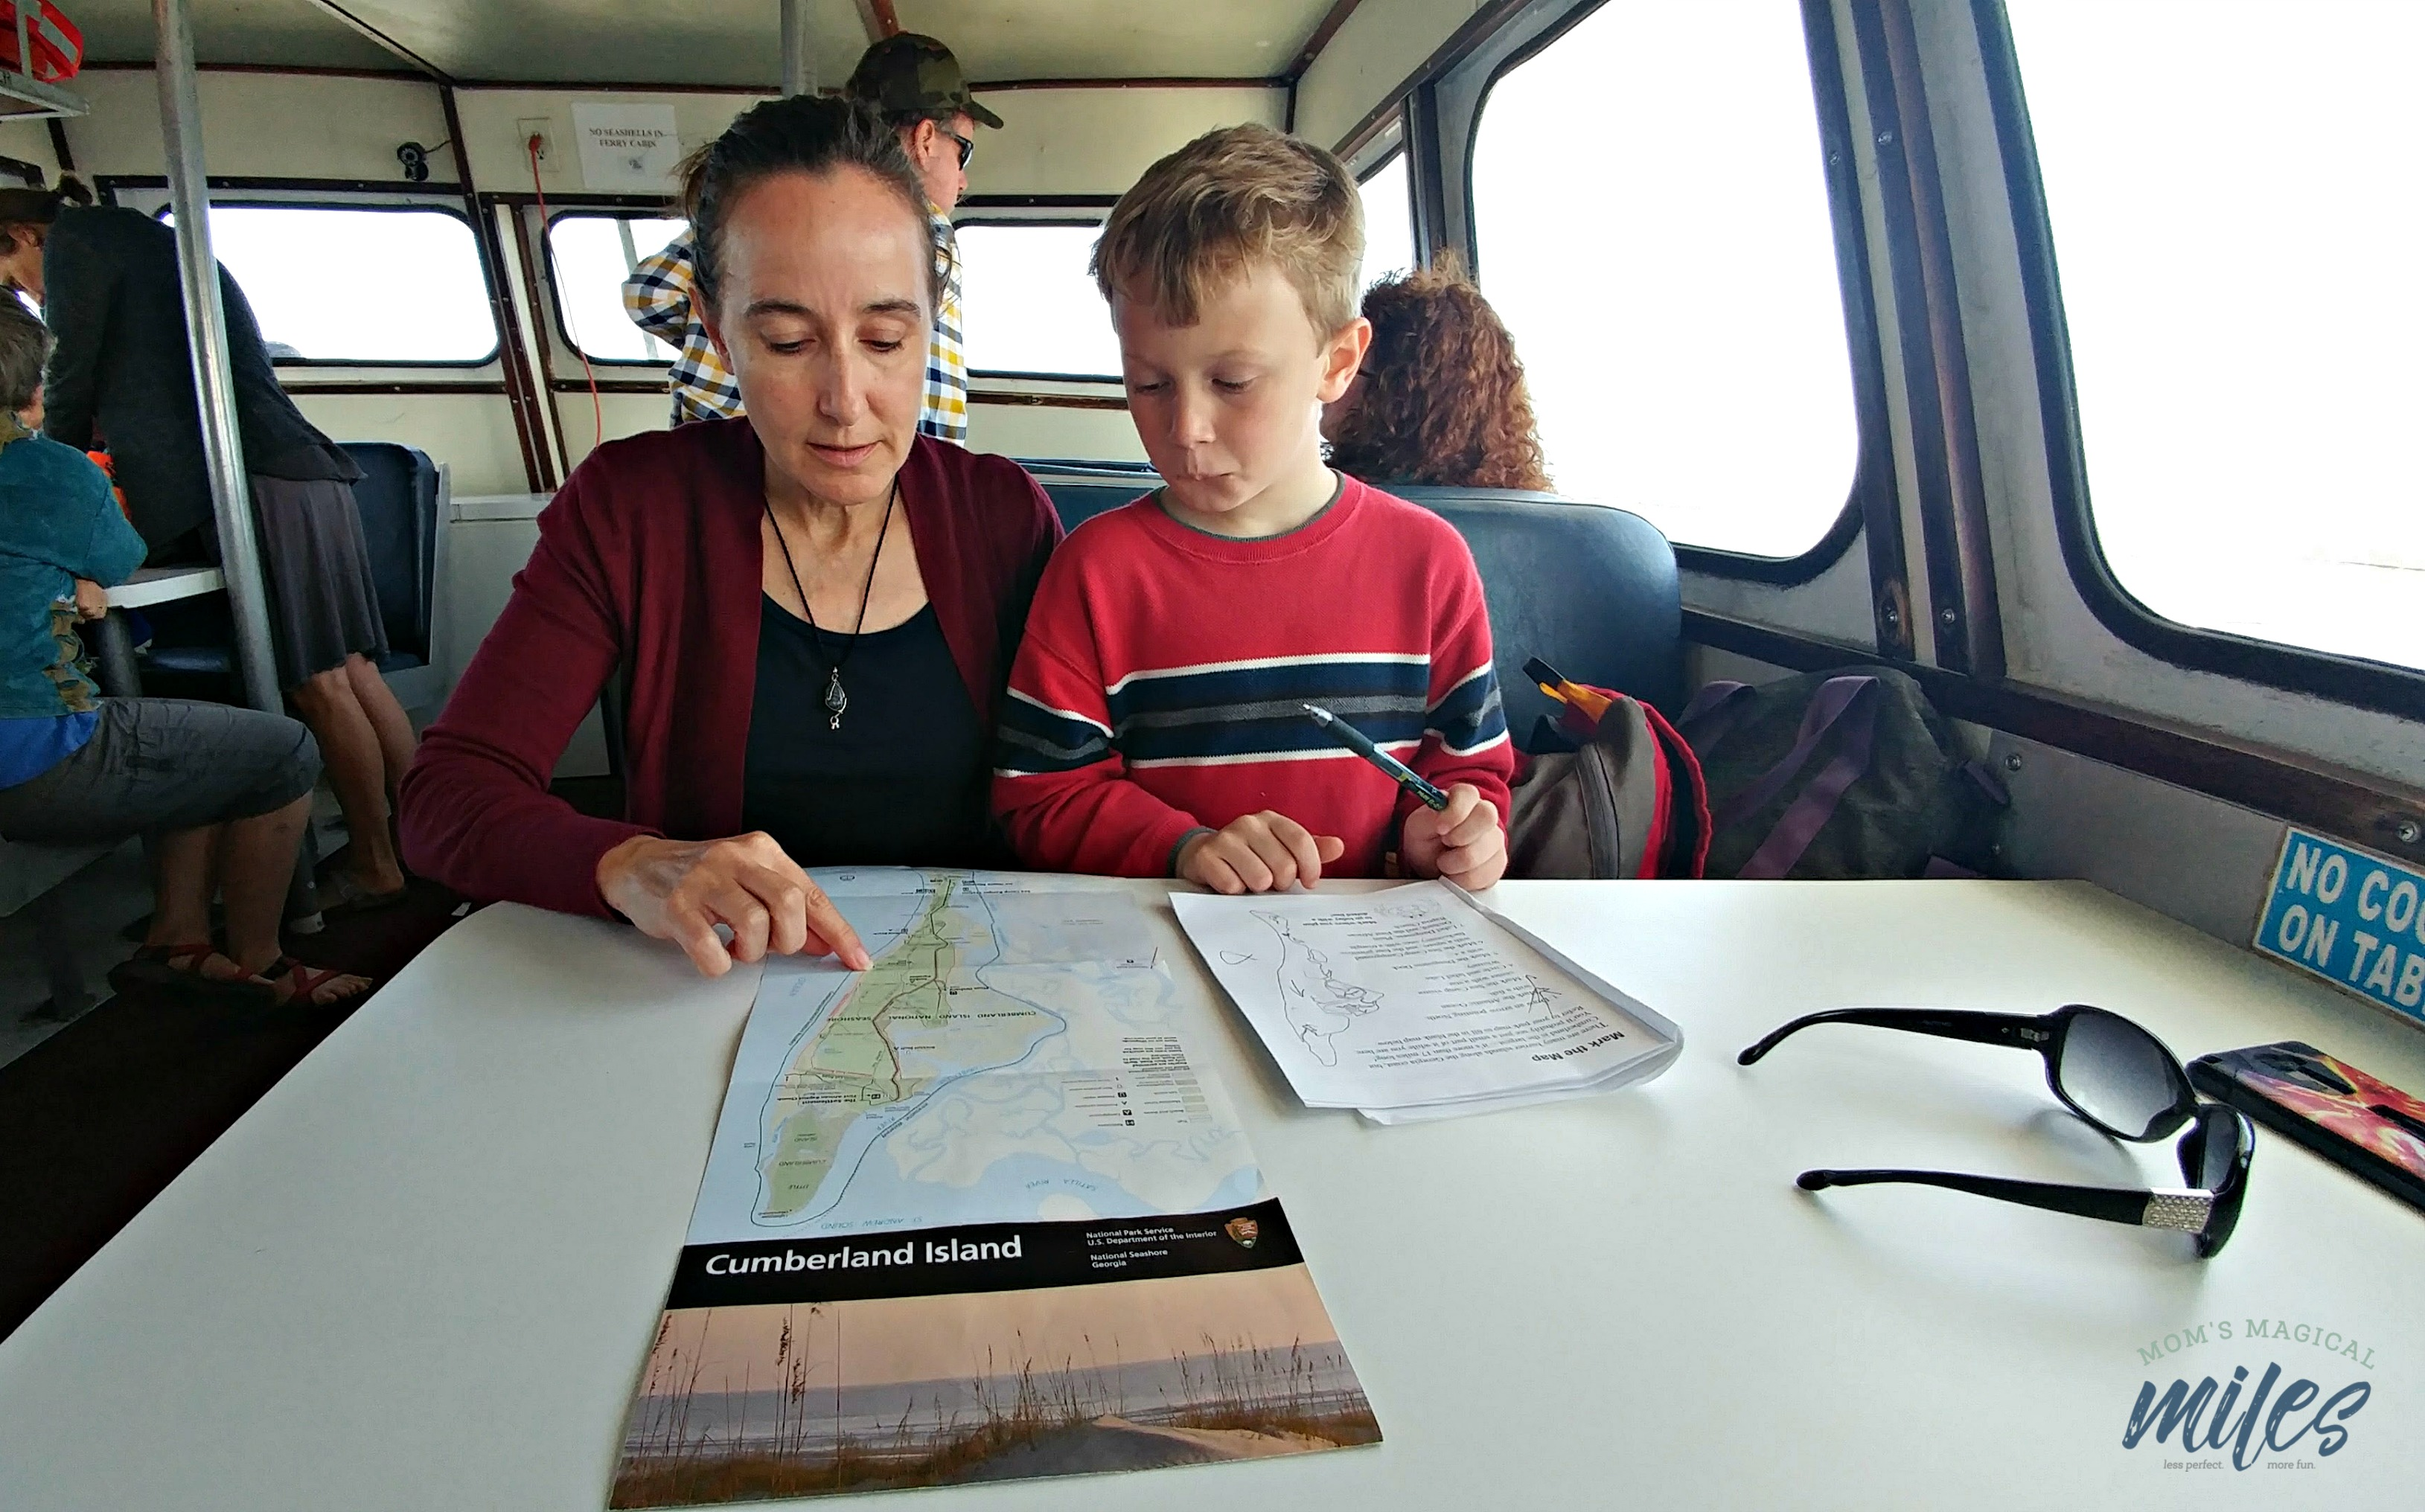 The cabin of the Cumberland Island Ferry has comfortable spots to relax and enjoy the ride!